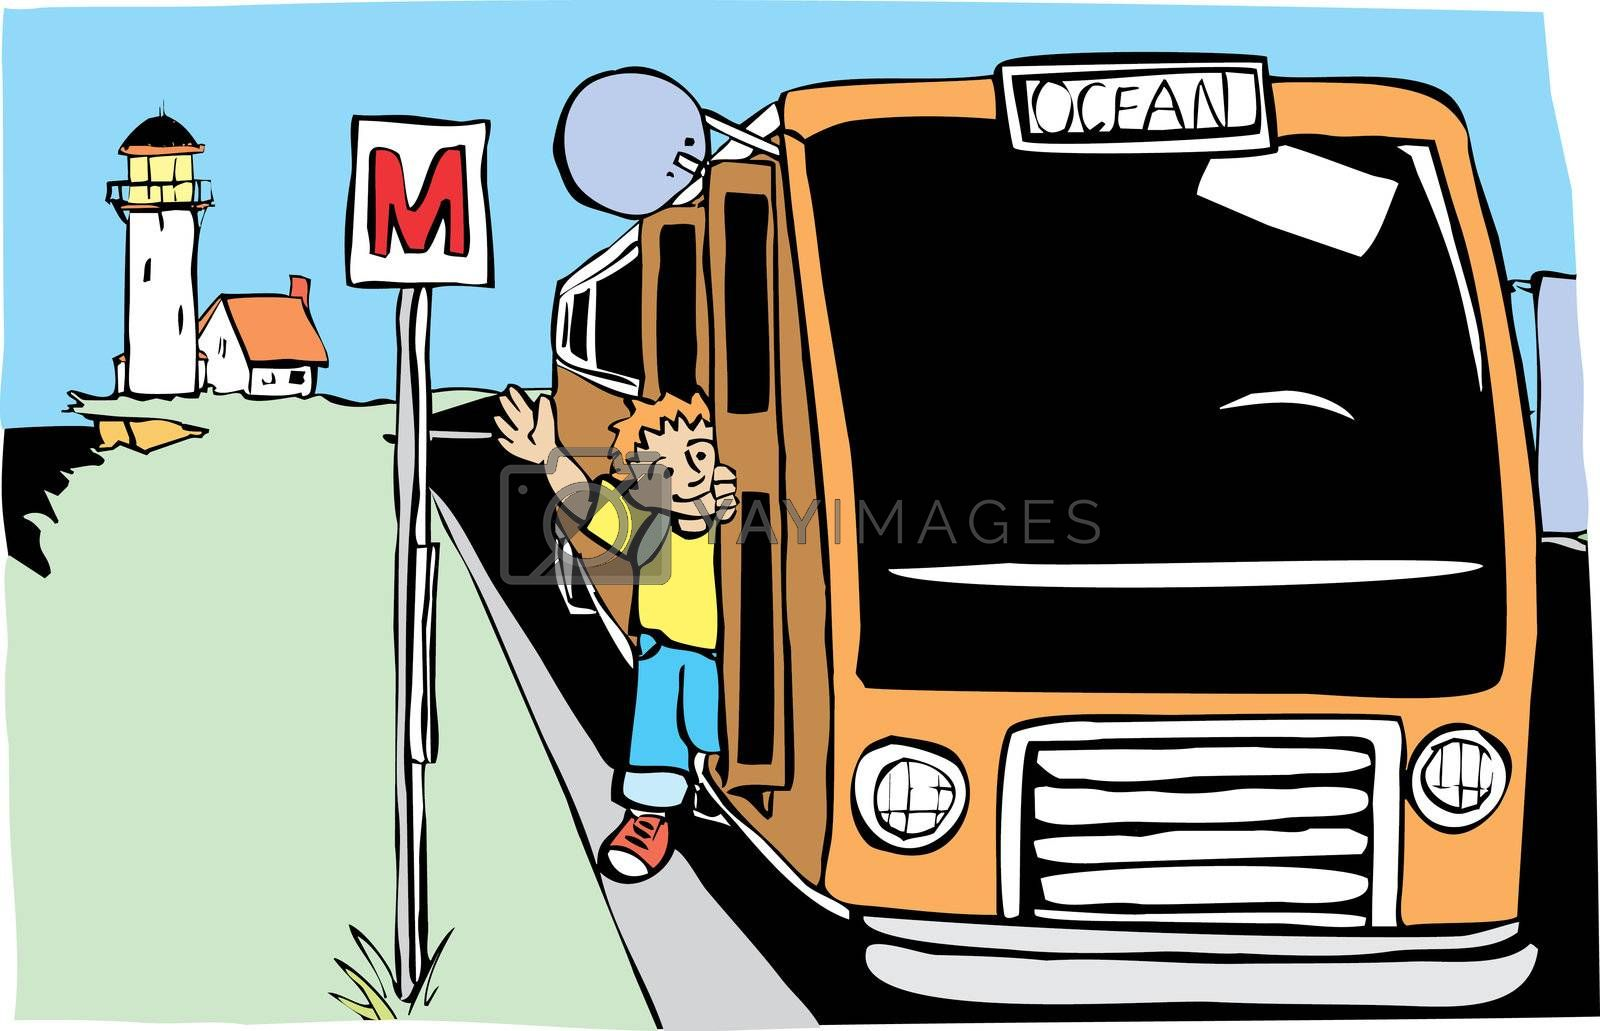 Boy getting off bus at a stop by the ocean.